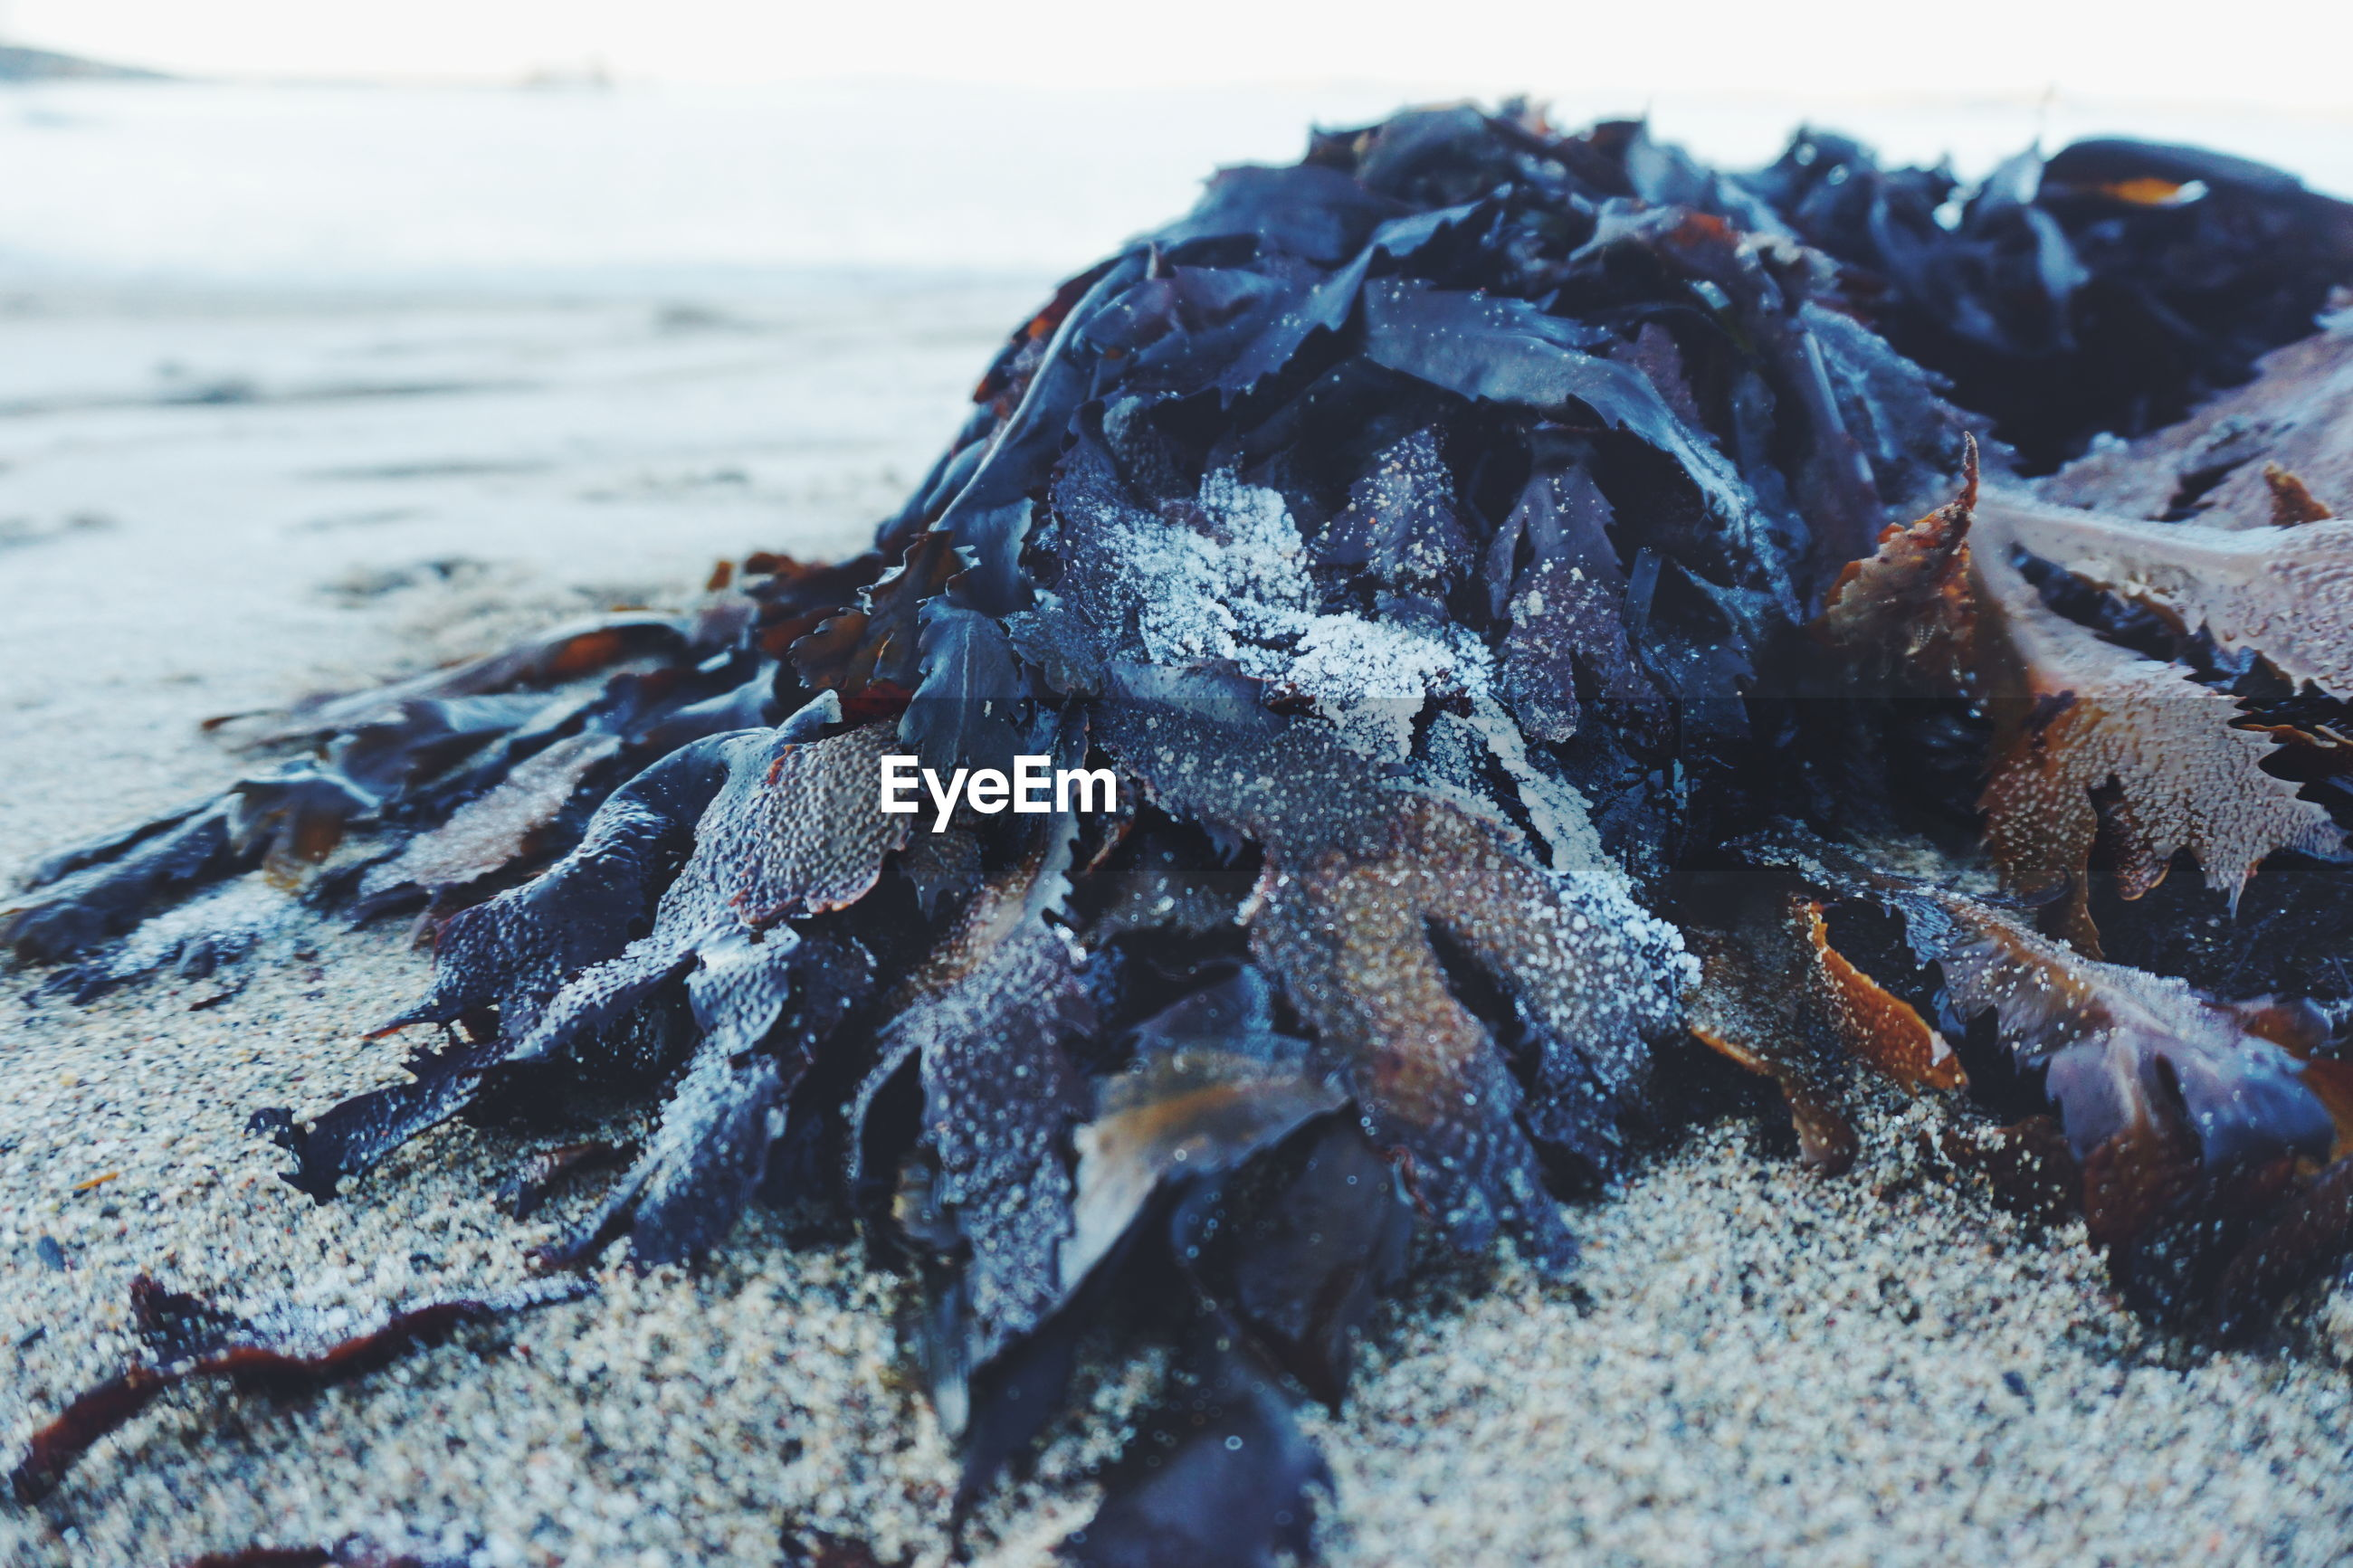 Close-up of seaweed on sand at beach